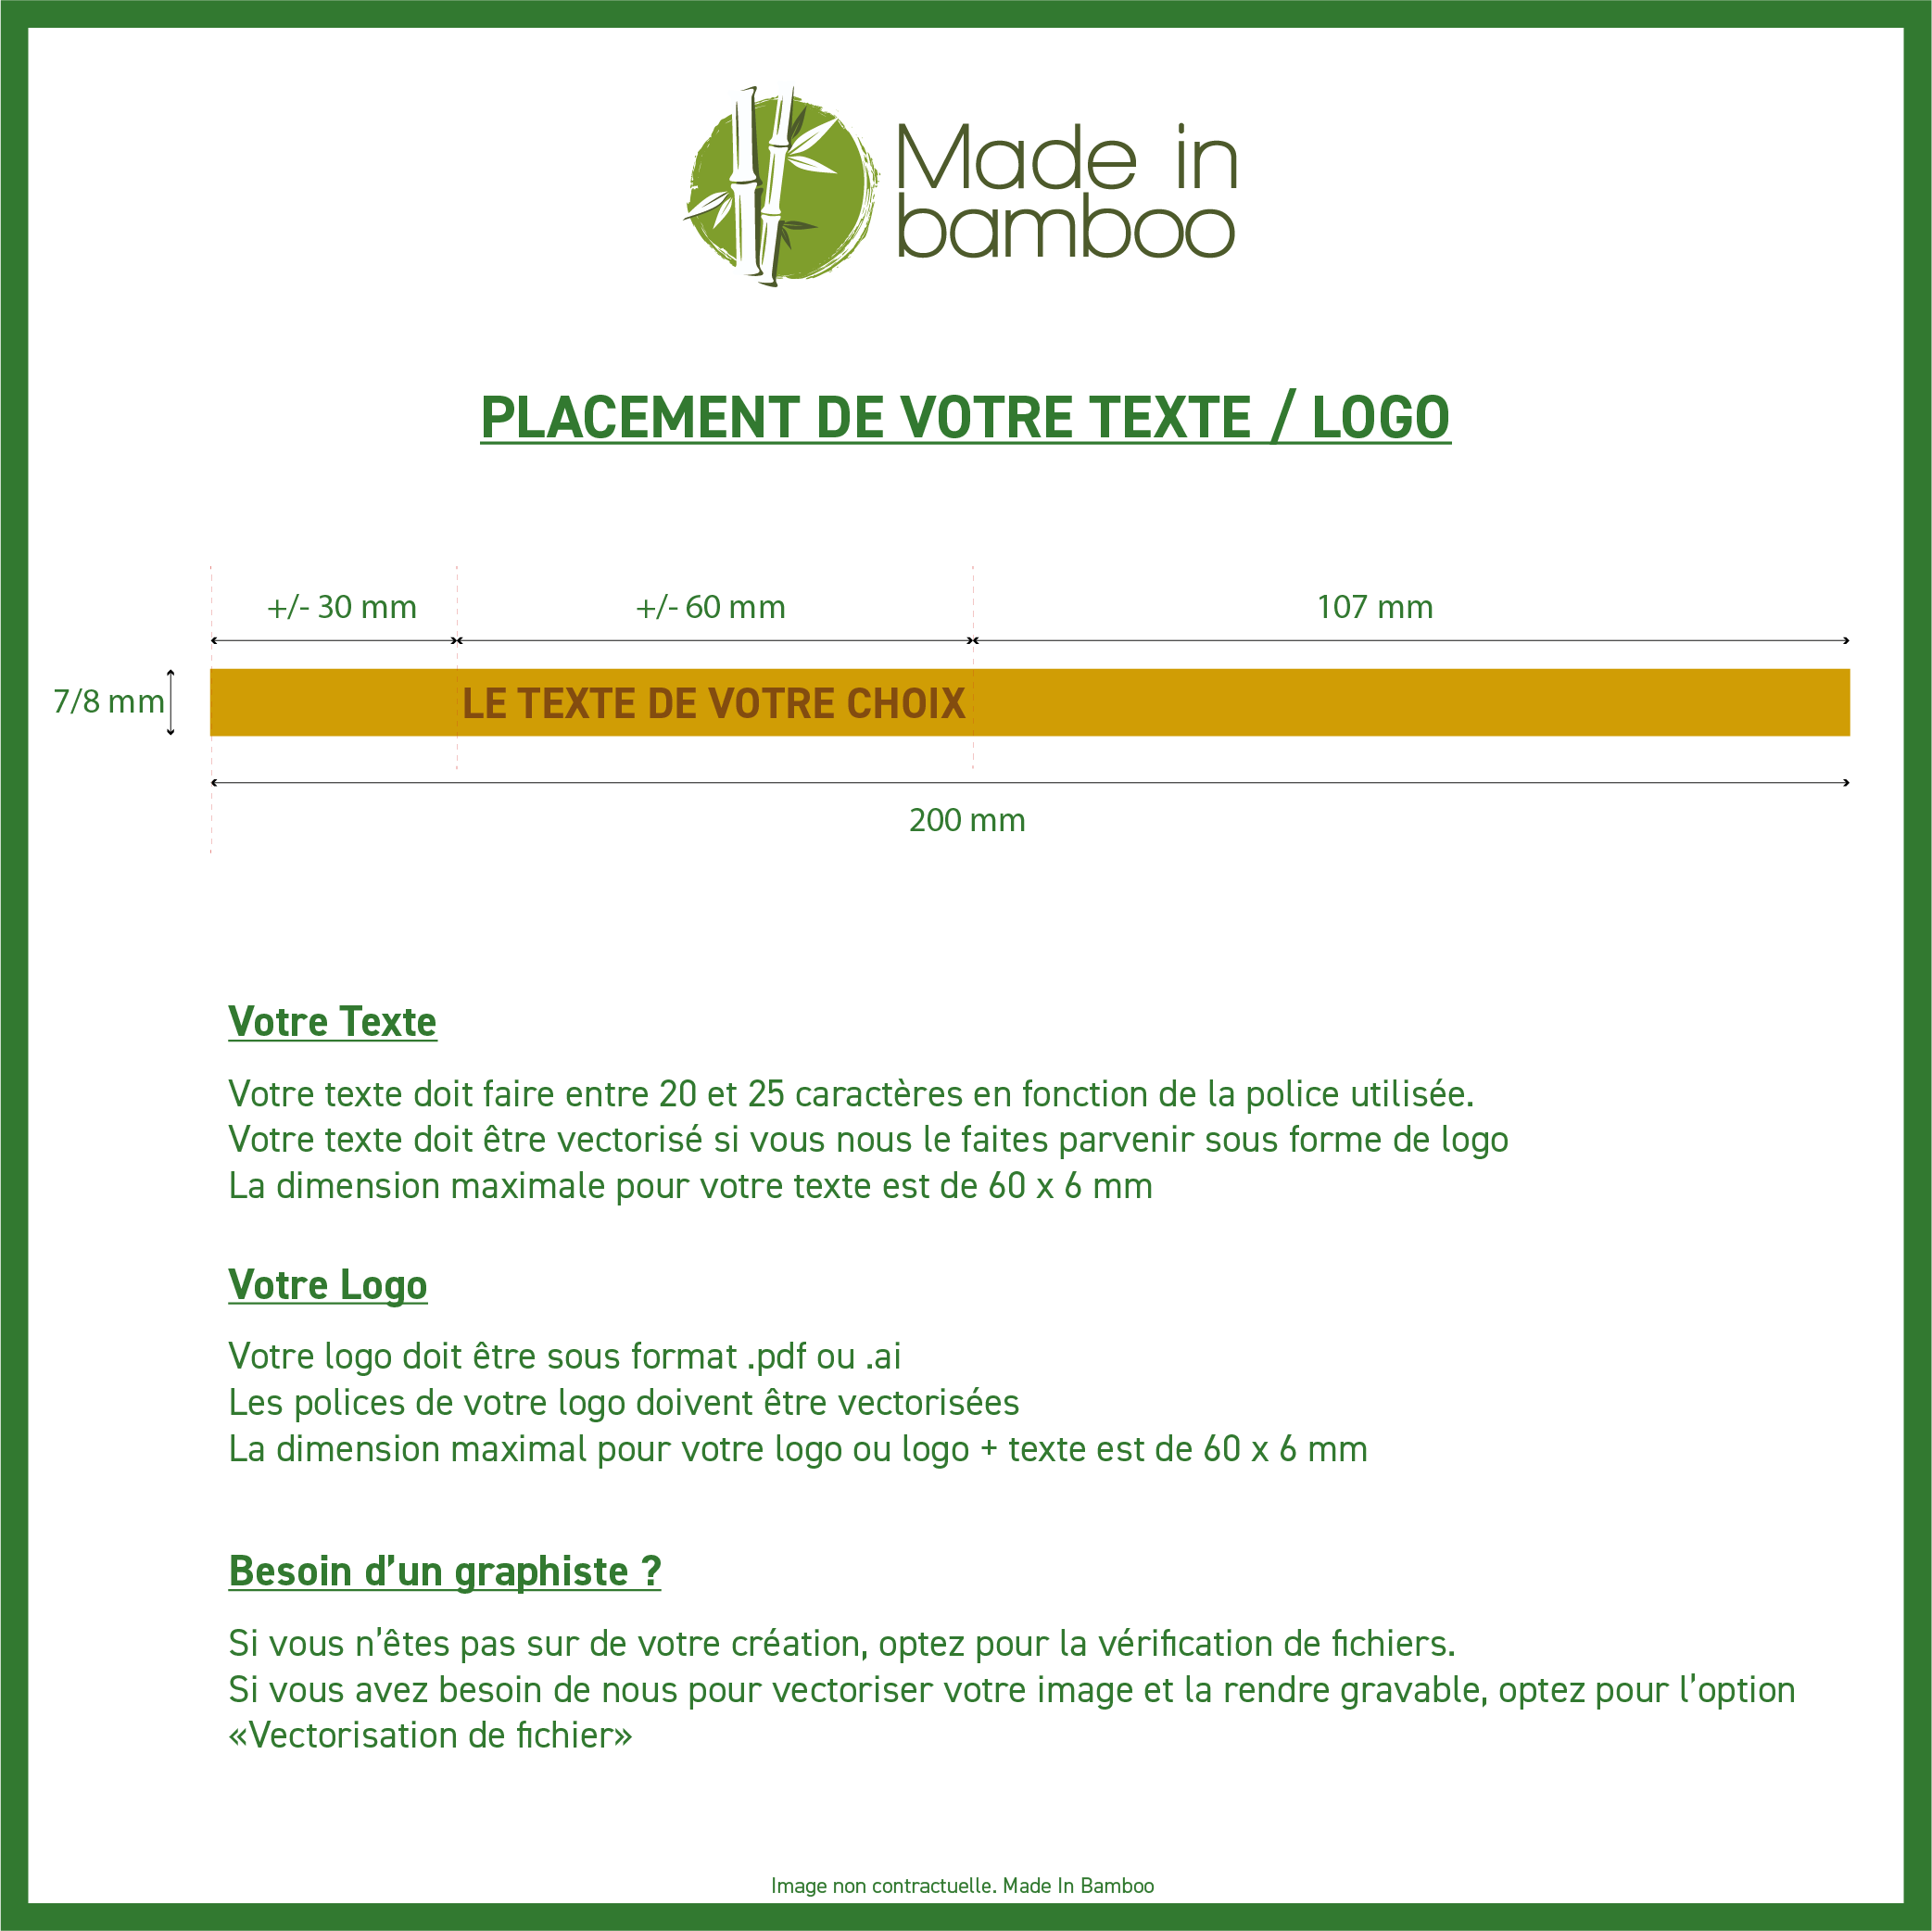 Placement Texte - Logo